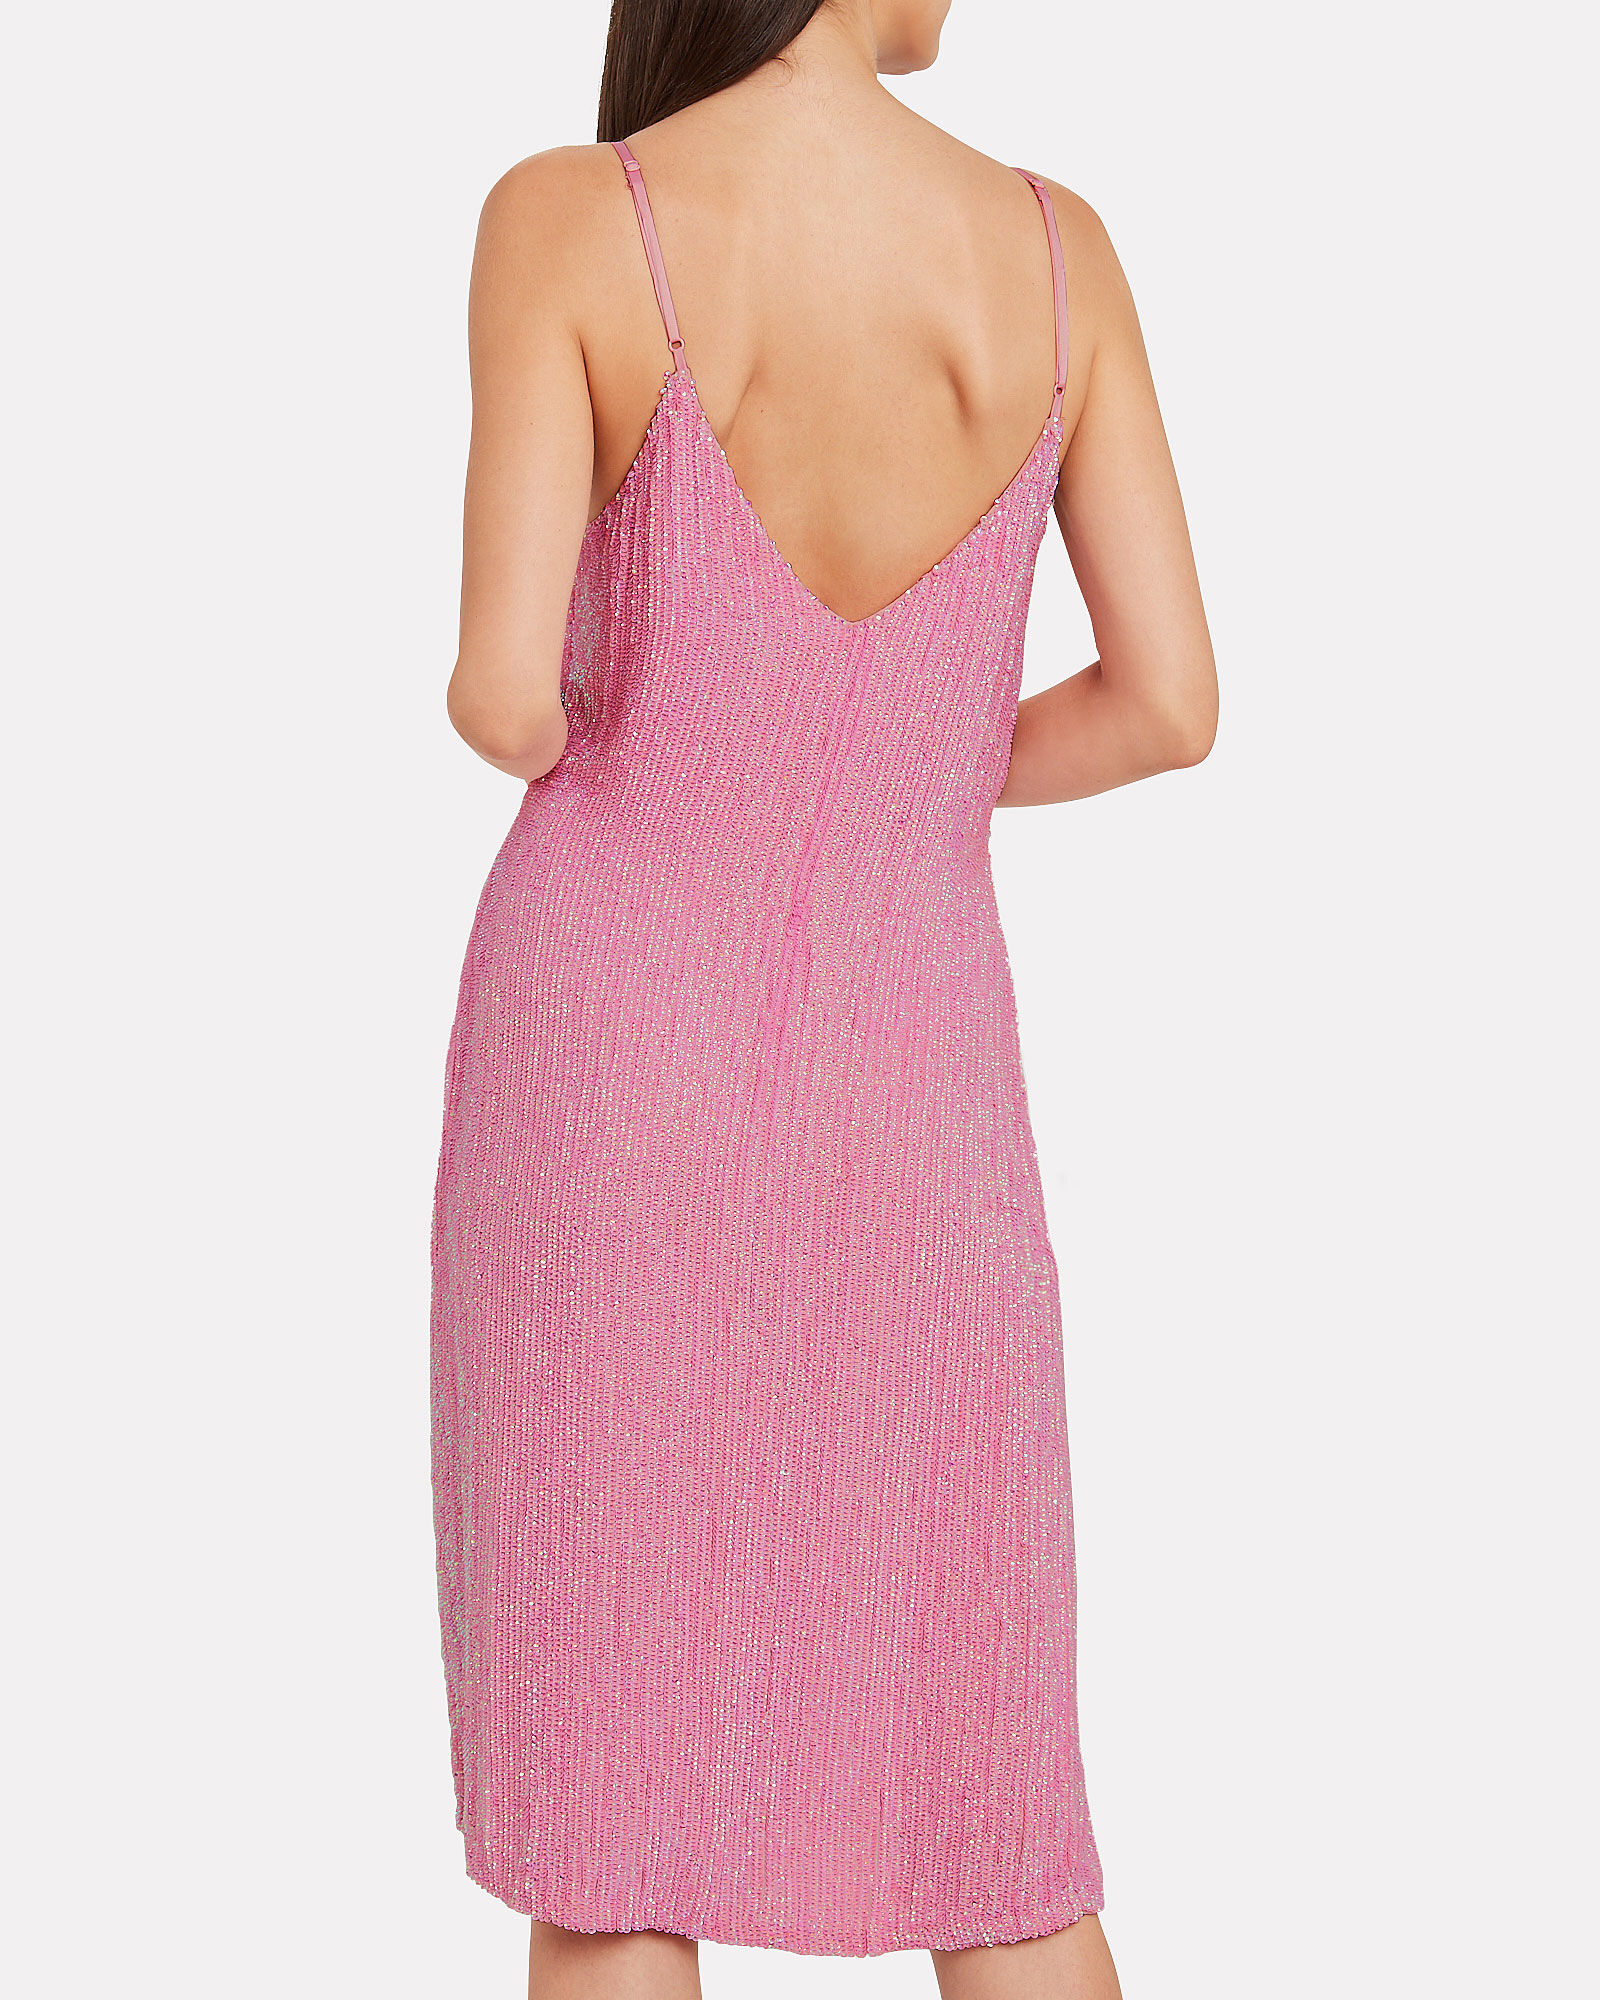 Denisa Sequin Slip Dress, PINK, hi-res